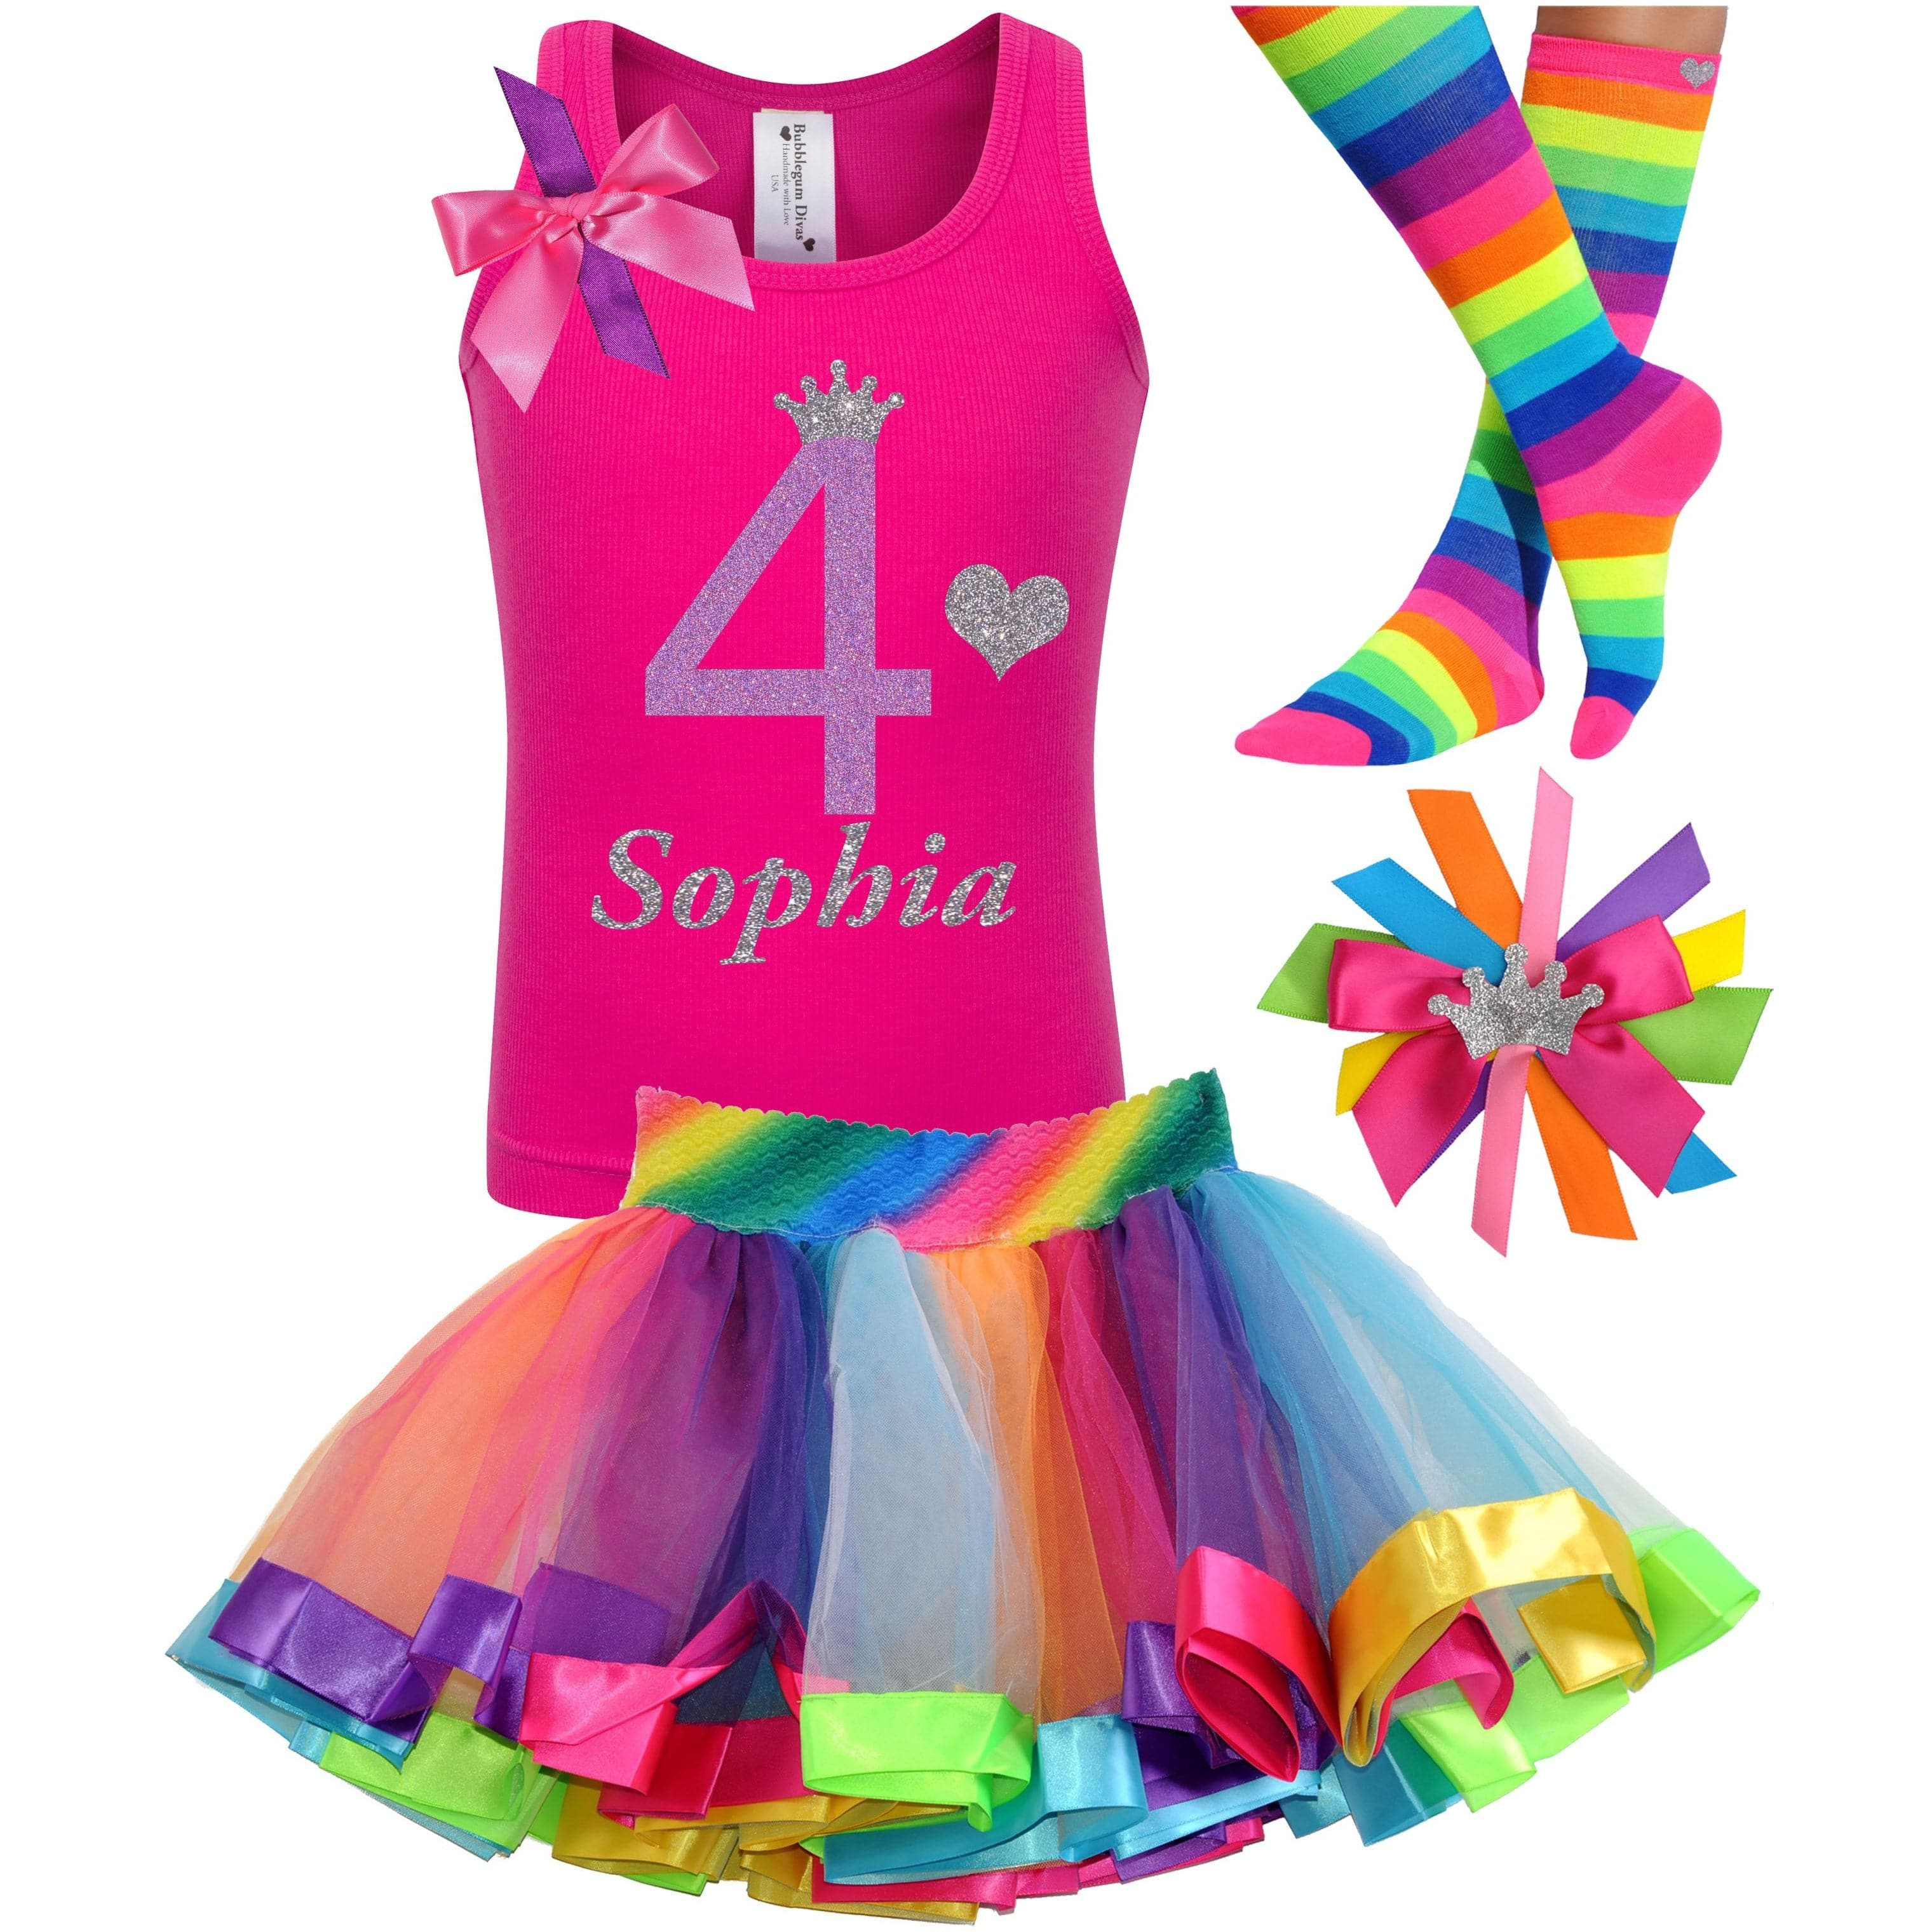 4th Birthday Shirt Rainbow Tutu Girls Party Outfit 4PC Set